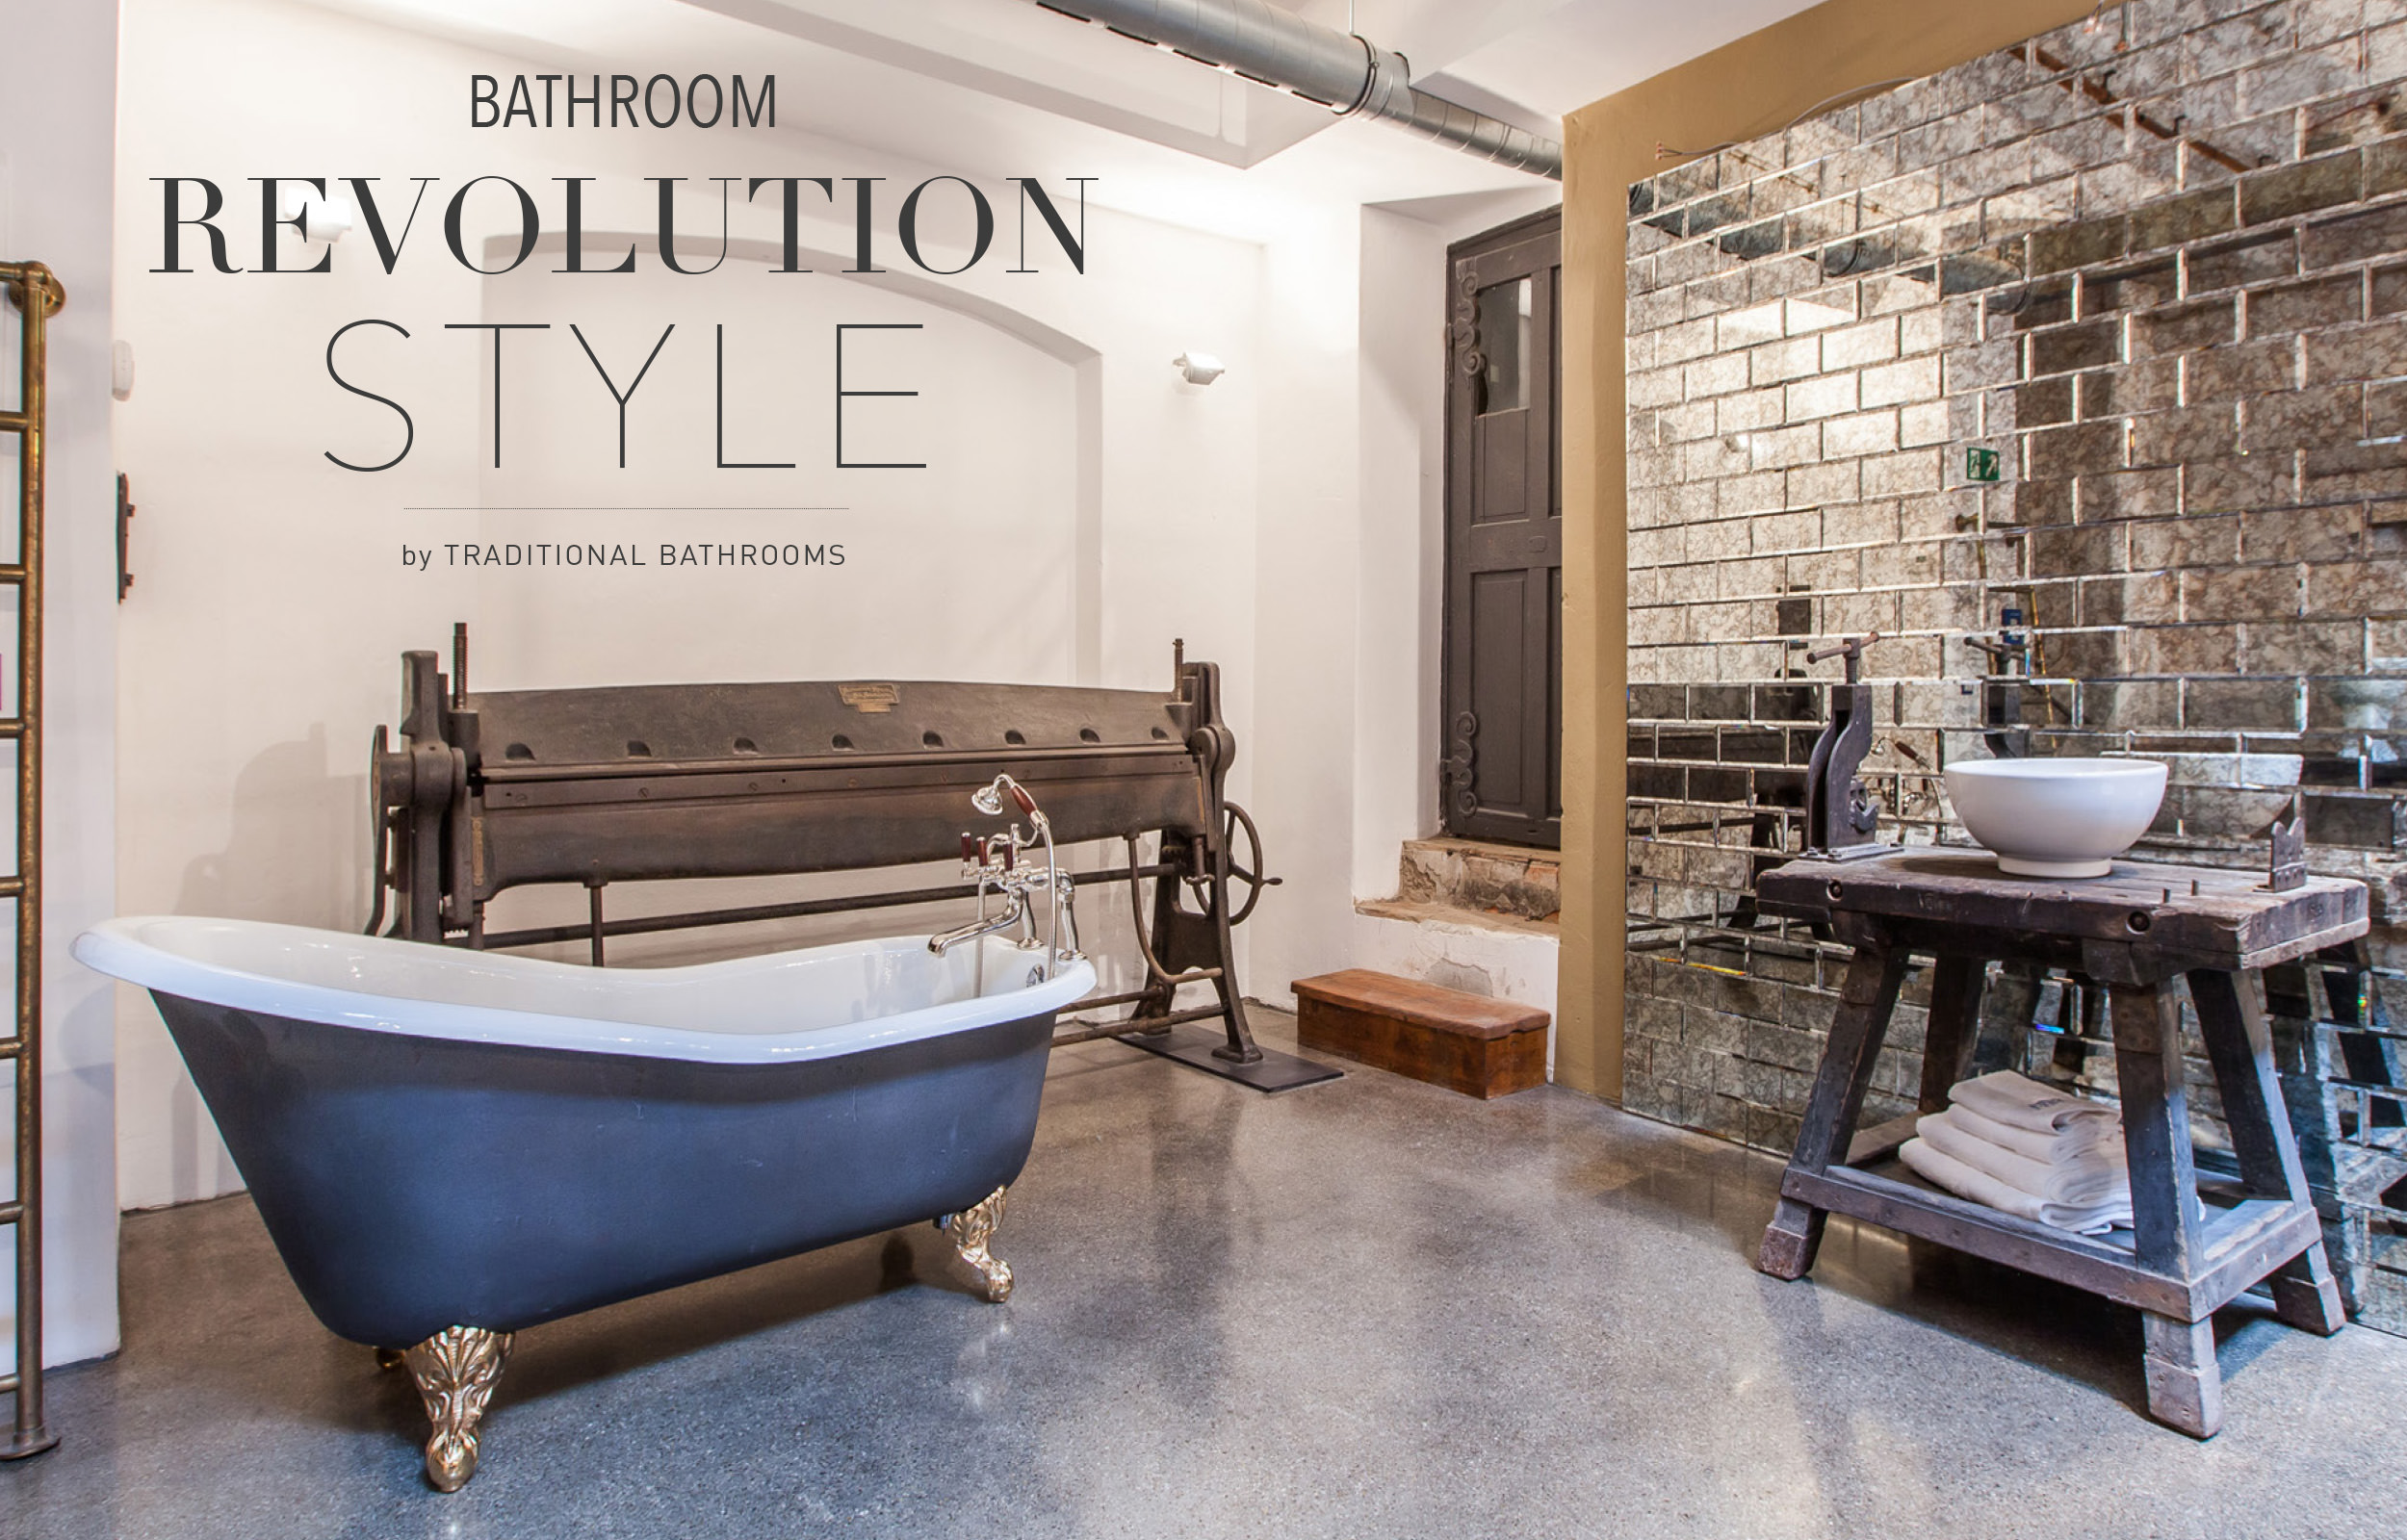 Loft Bad By Traditional Bathrooms Kreativ Hochwertig Und Individuell